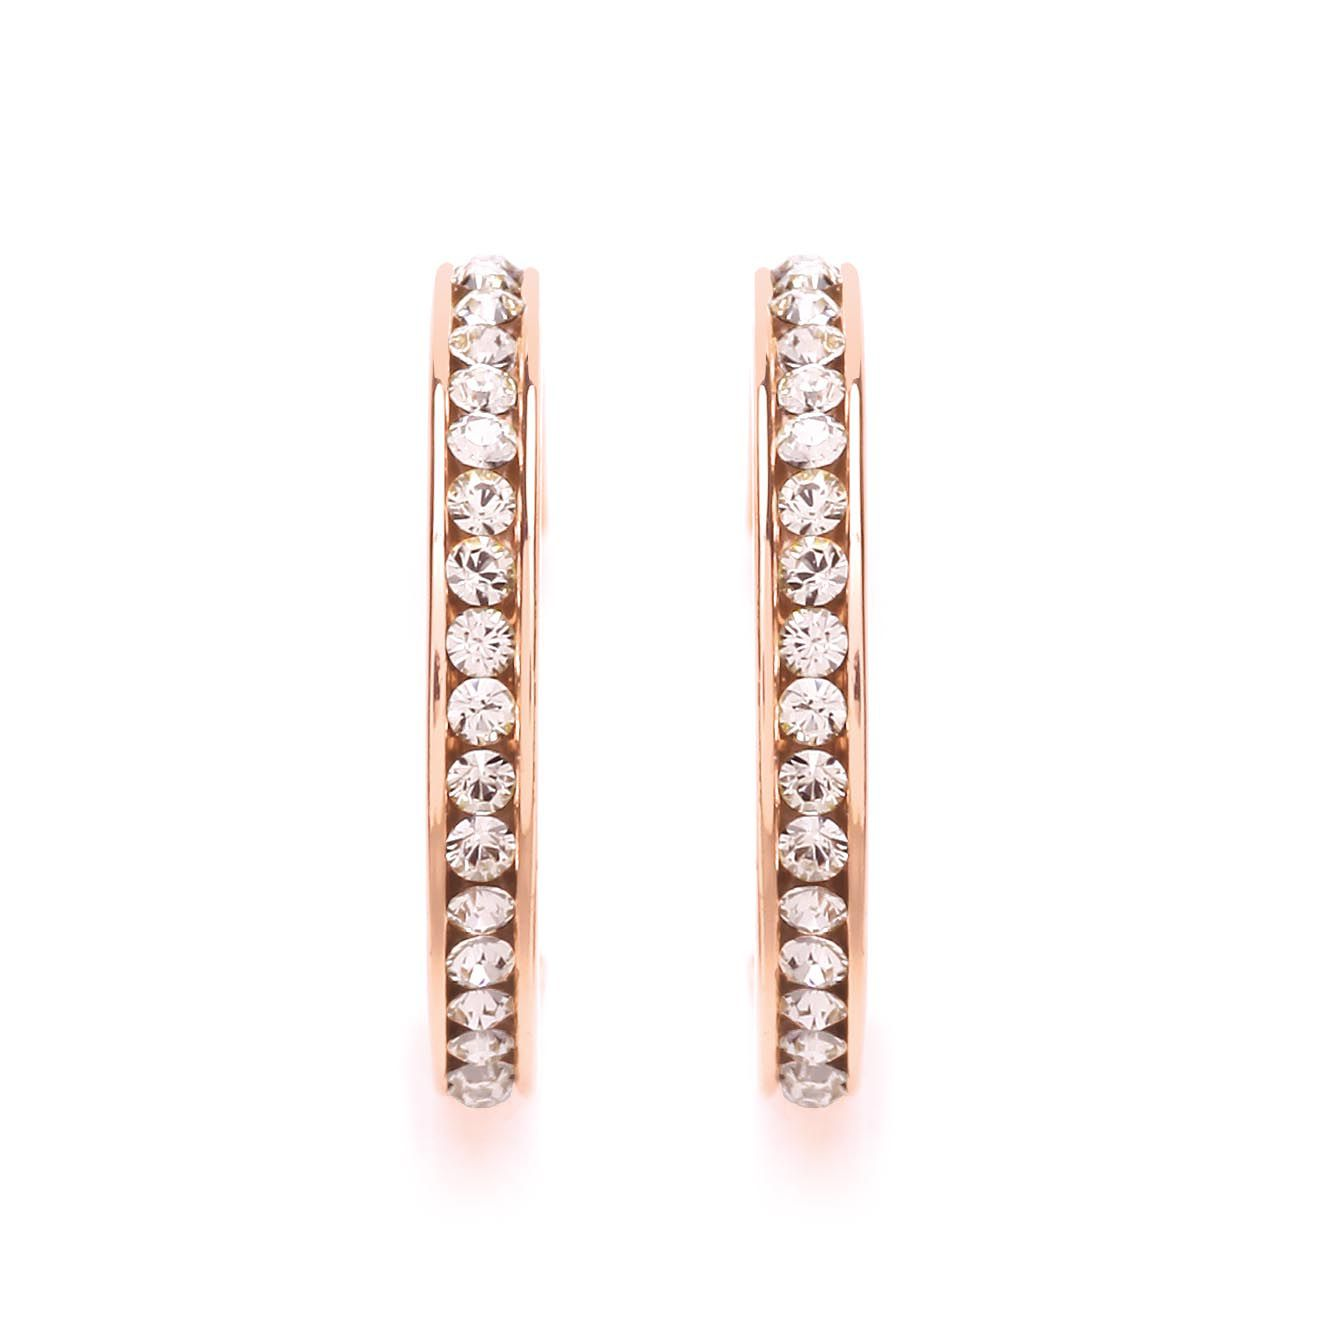 Buckley London Rose Gold Crystal Hoop Earrings Rose Gold